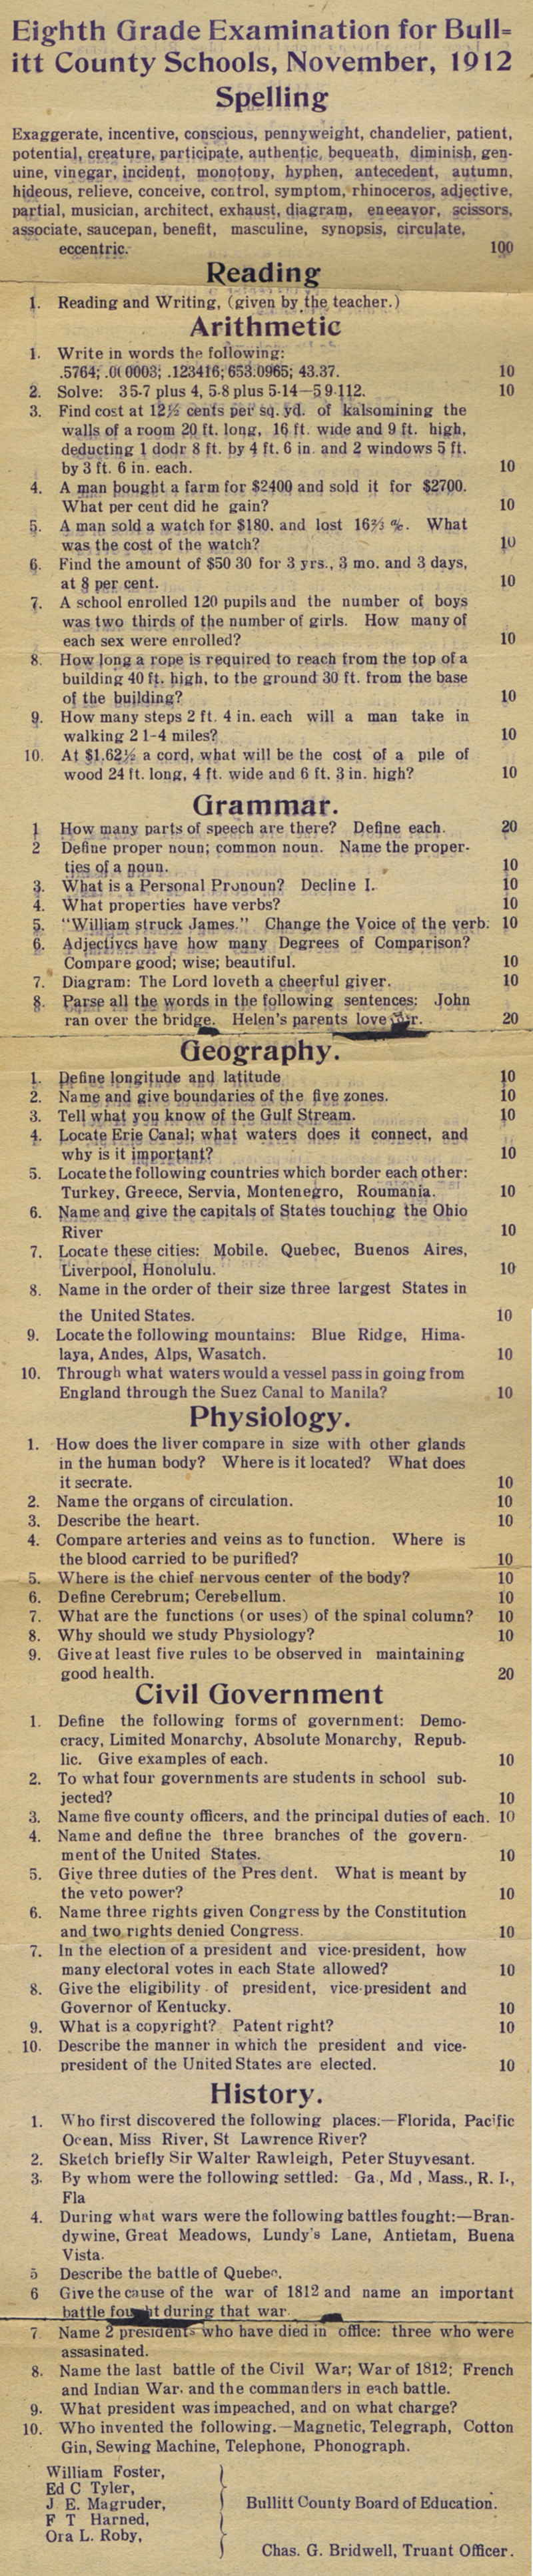 Bullitt County History 1912 School Exam